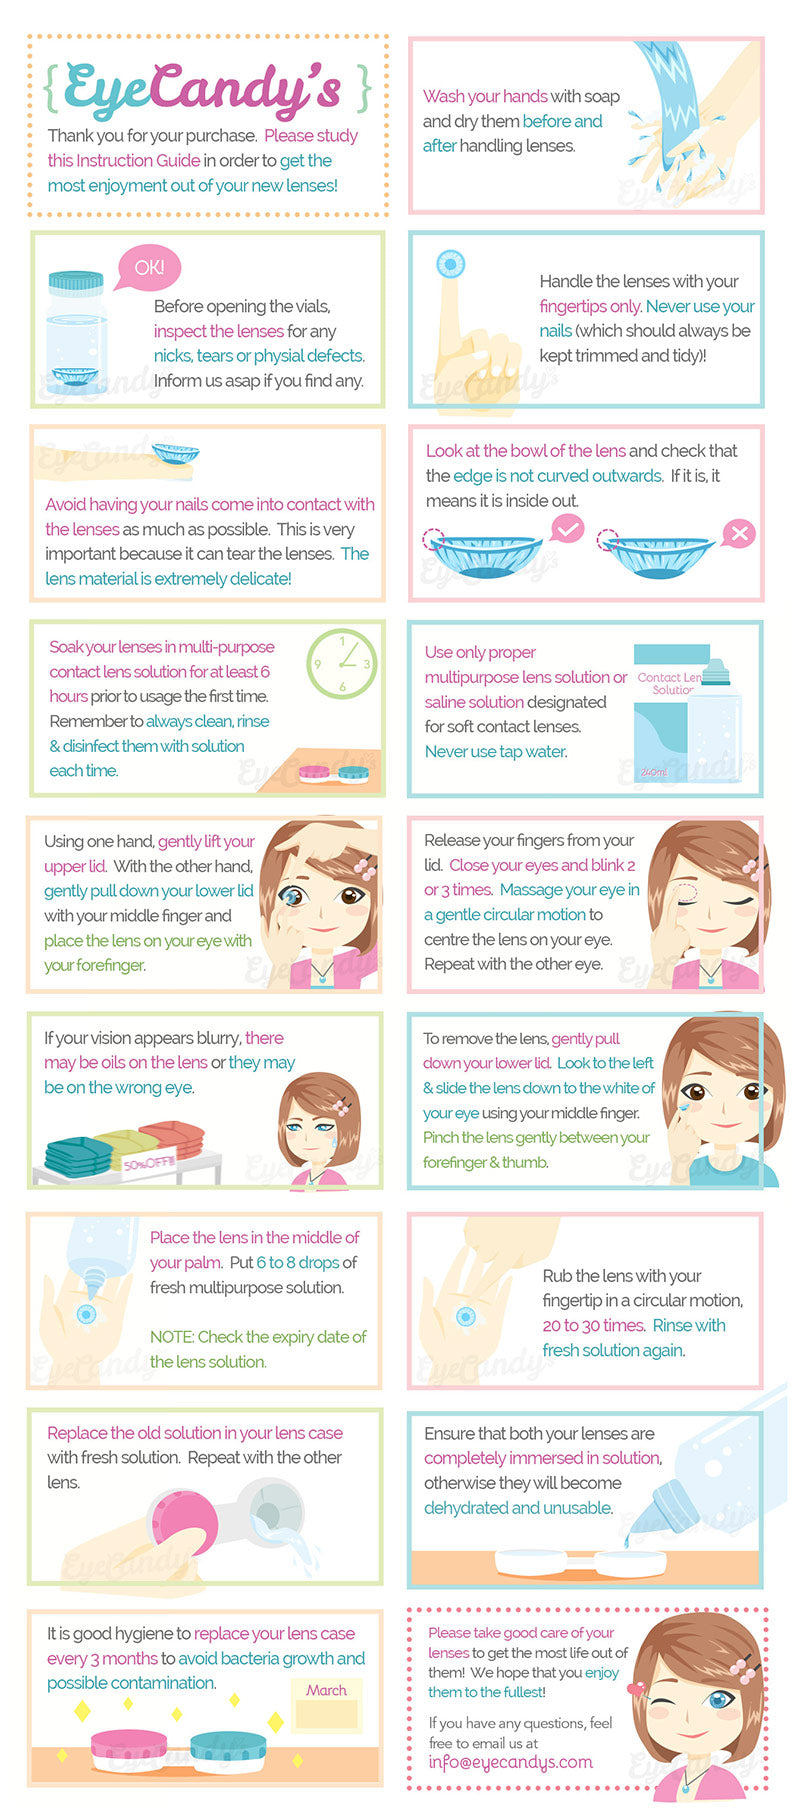 Colored Contact Lenses Wear and Care Usage Guide from EyeCandy's